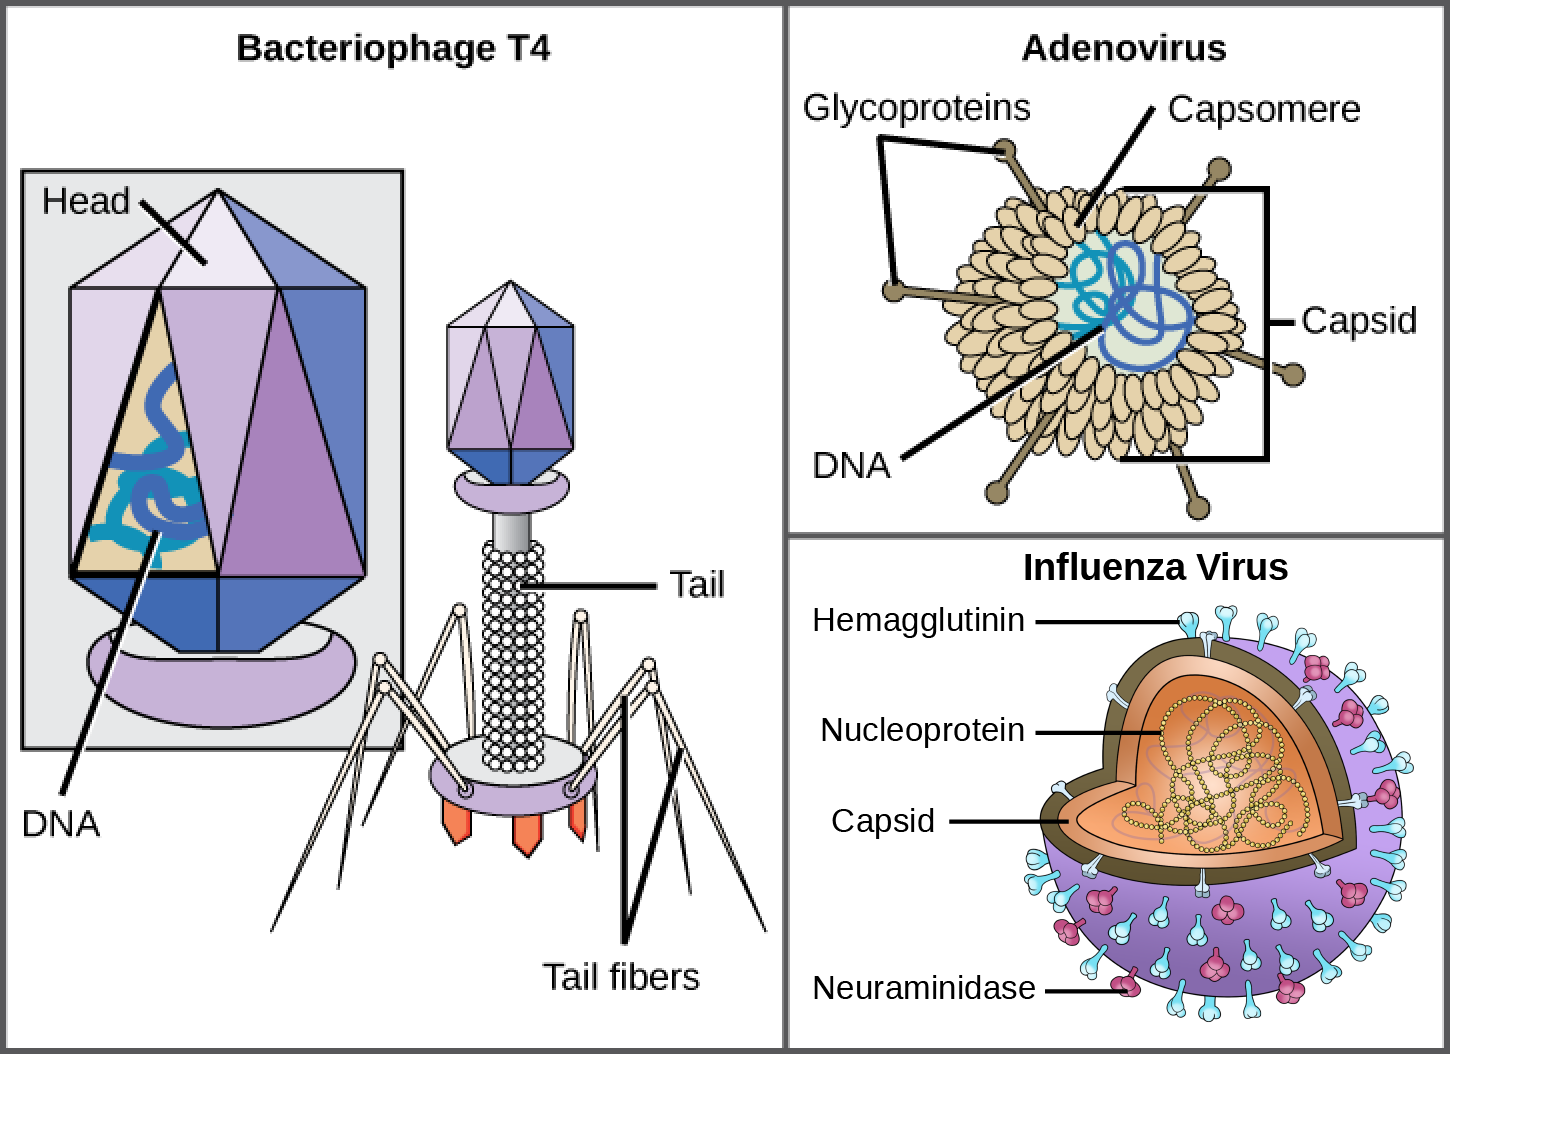 Illustration a shows bacteriophage T 4, which houses its D N A genome in a hexagonal head. A long, straight tail extends from the bottom of the head. Tail fibers attached to the base of the tail are bent, like spider legs. In b, adenovirus houses its D N A genome in a round capsid made from many small capsomere subunits. Glycoproteins extend from the capsomere, like pins from a pincushion. In c, the H I V retrovirus houses its R N A genome and a bullet-shaped capsid. A spherical viral envelope, lined with matrix proteins, surrounds the capsid. Two different varieties of glycoprotein spike are embedded in the envelope. Approximately 80 percent of the spikes are hemagglutinin. The remaining 20 percent or so of the glycoprotein spikes consist of neuraminidase.